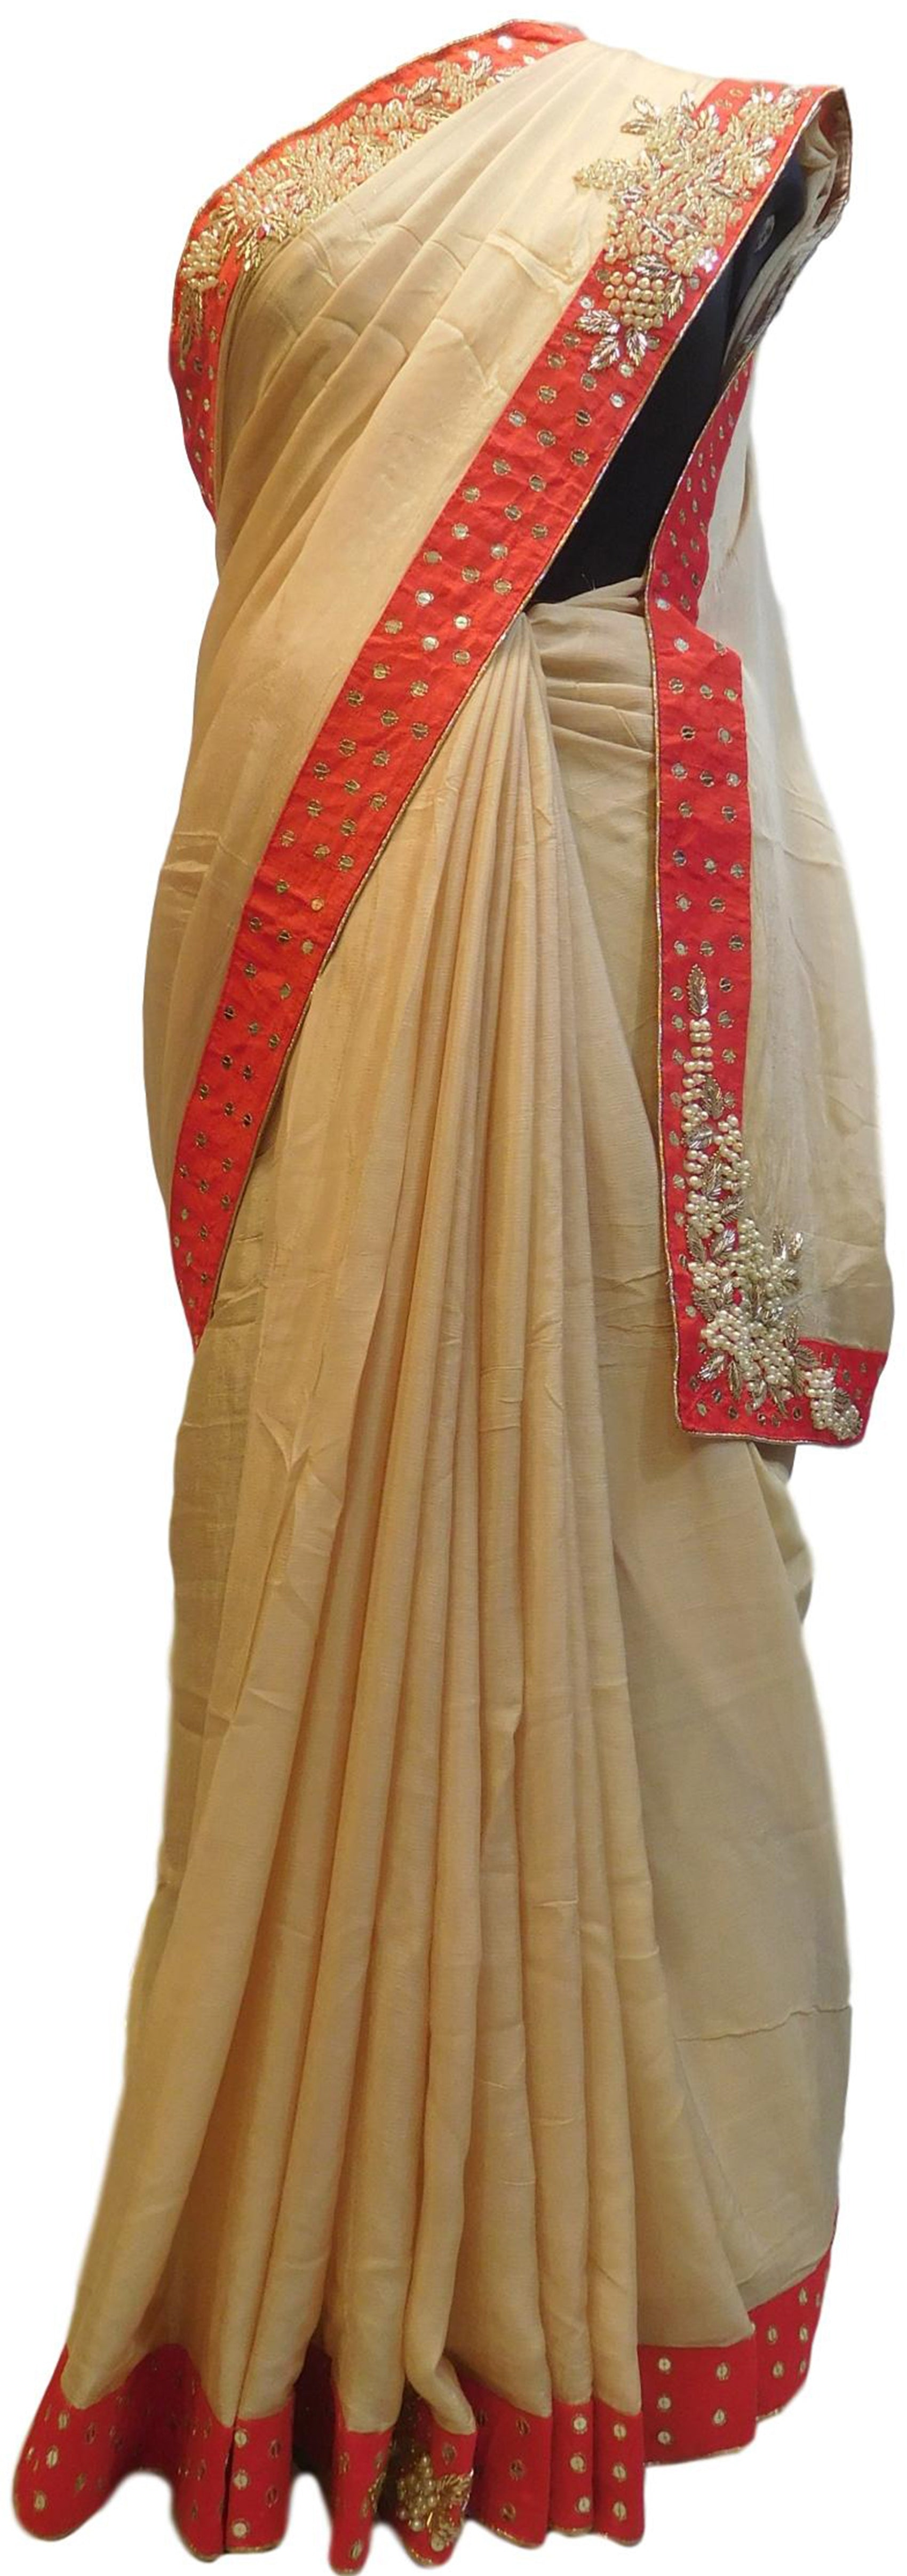 Beige Designer Wedding Partywear Crepe (Chinon) Bullion Pearl Sequence Cutdana Beads Hand Embroidery Work Bridal Saree Sari E087